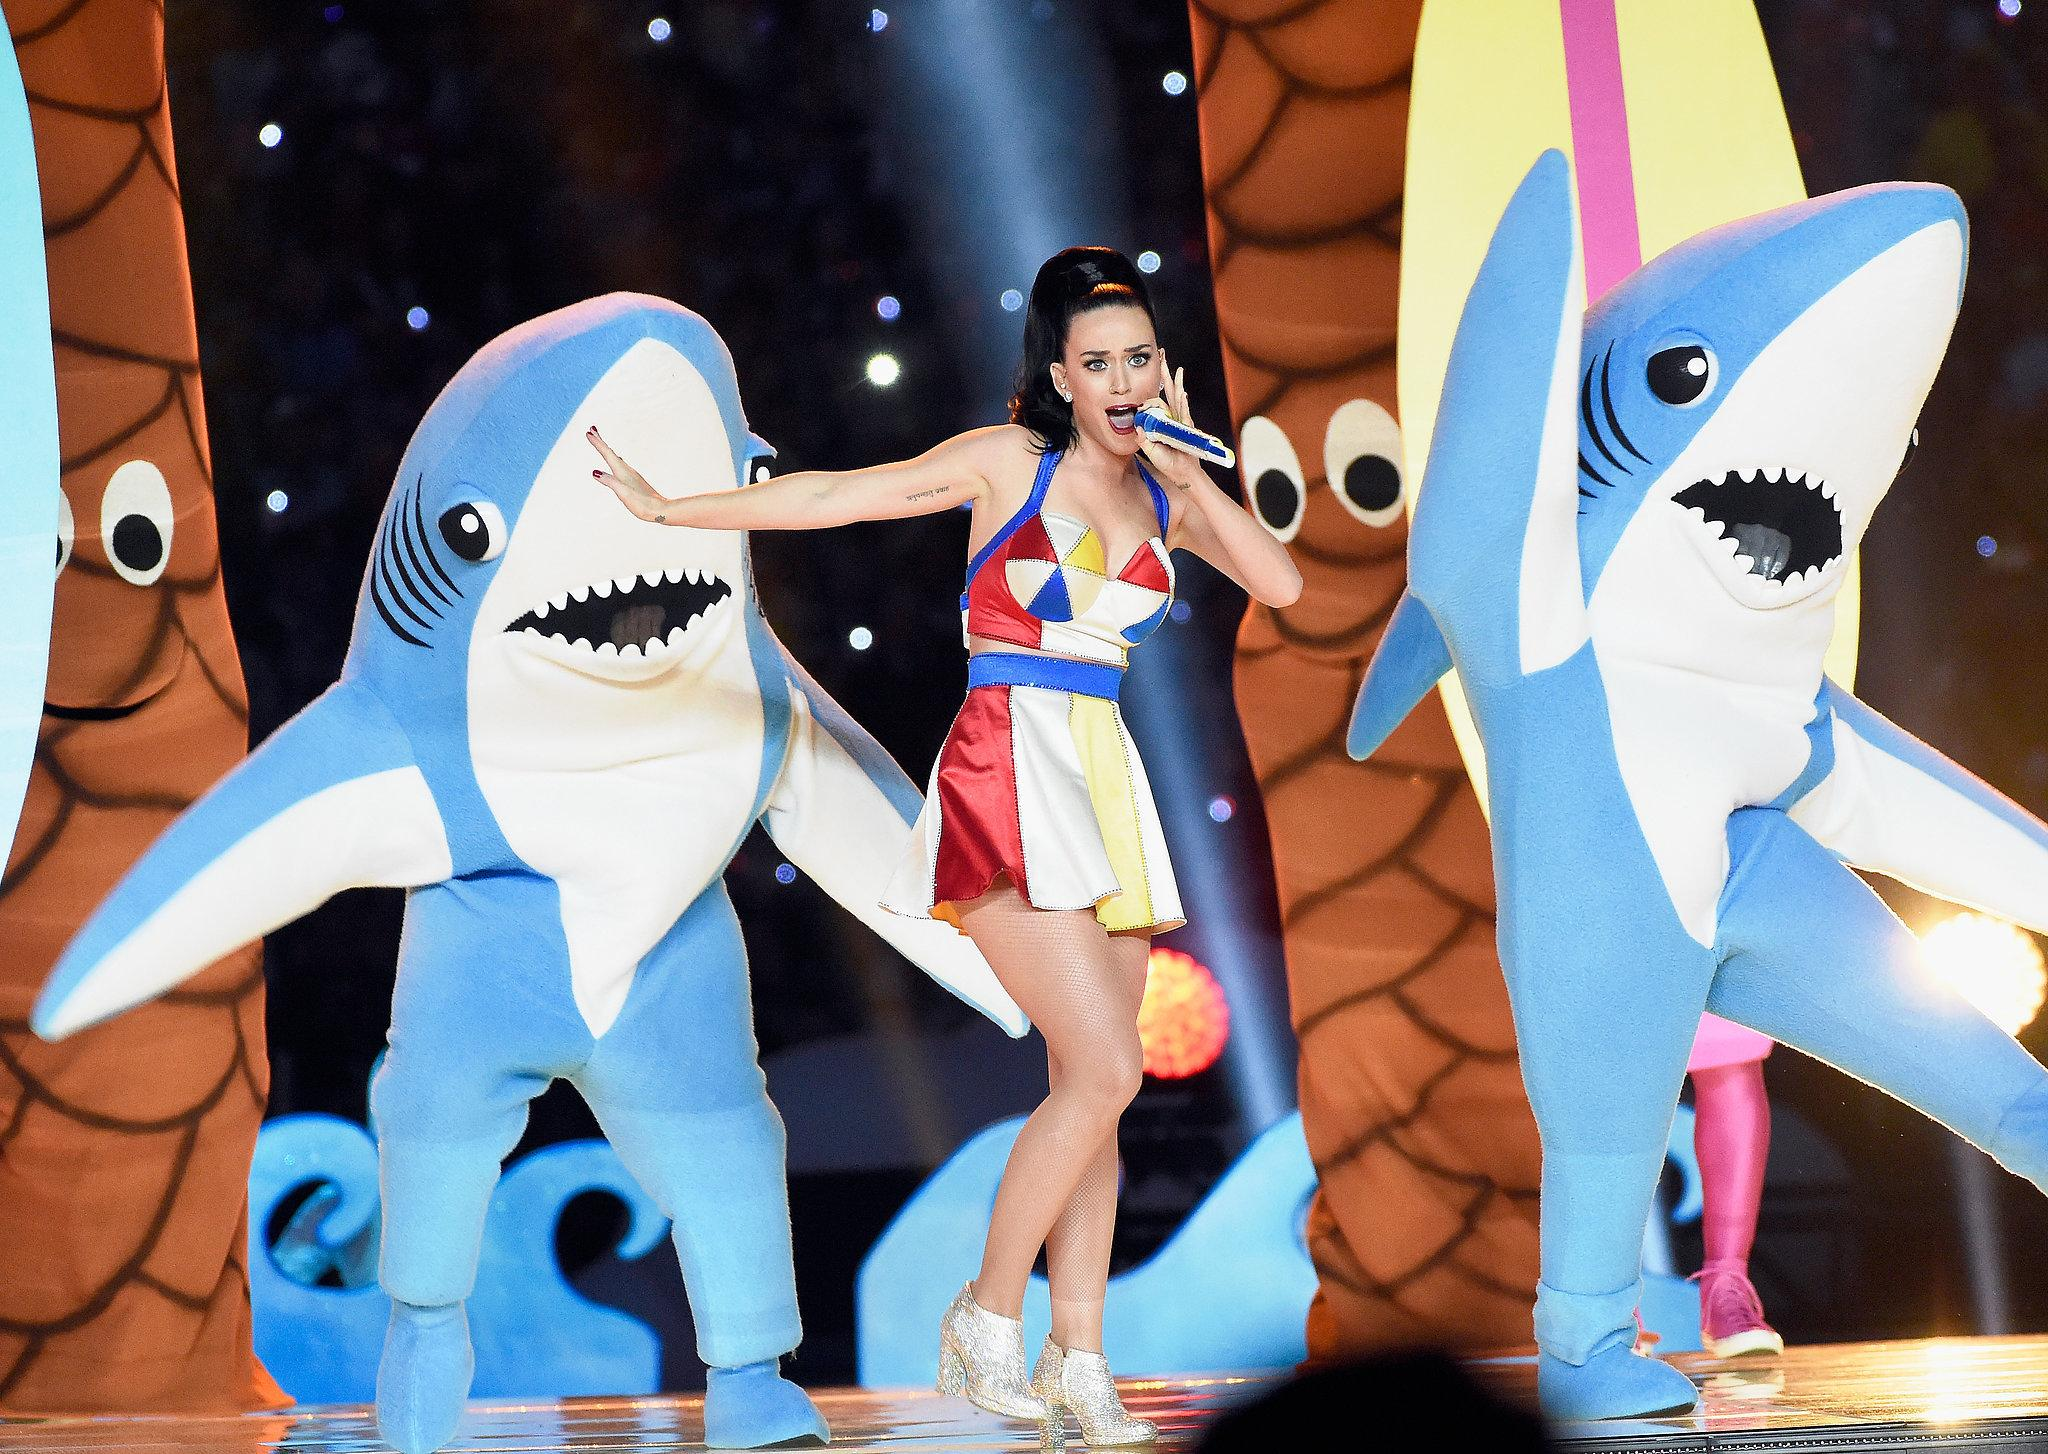 If #leftshark is your spirit animal, you totally need this: http://t.co/Cl22OwHfng http://t.co/8CISQqe13V